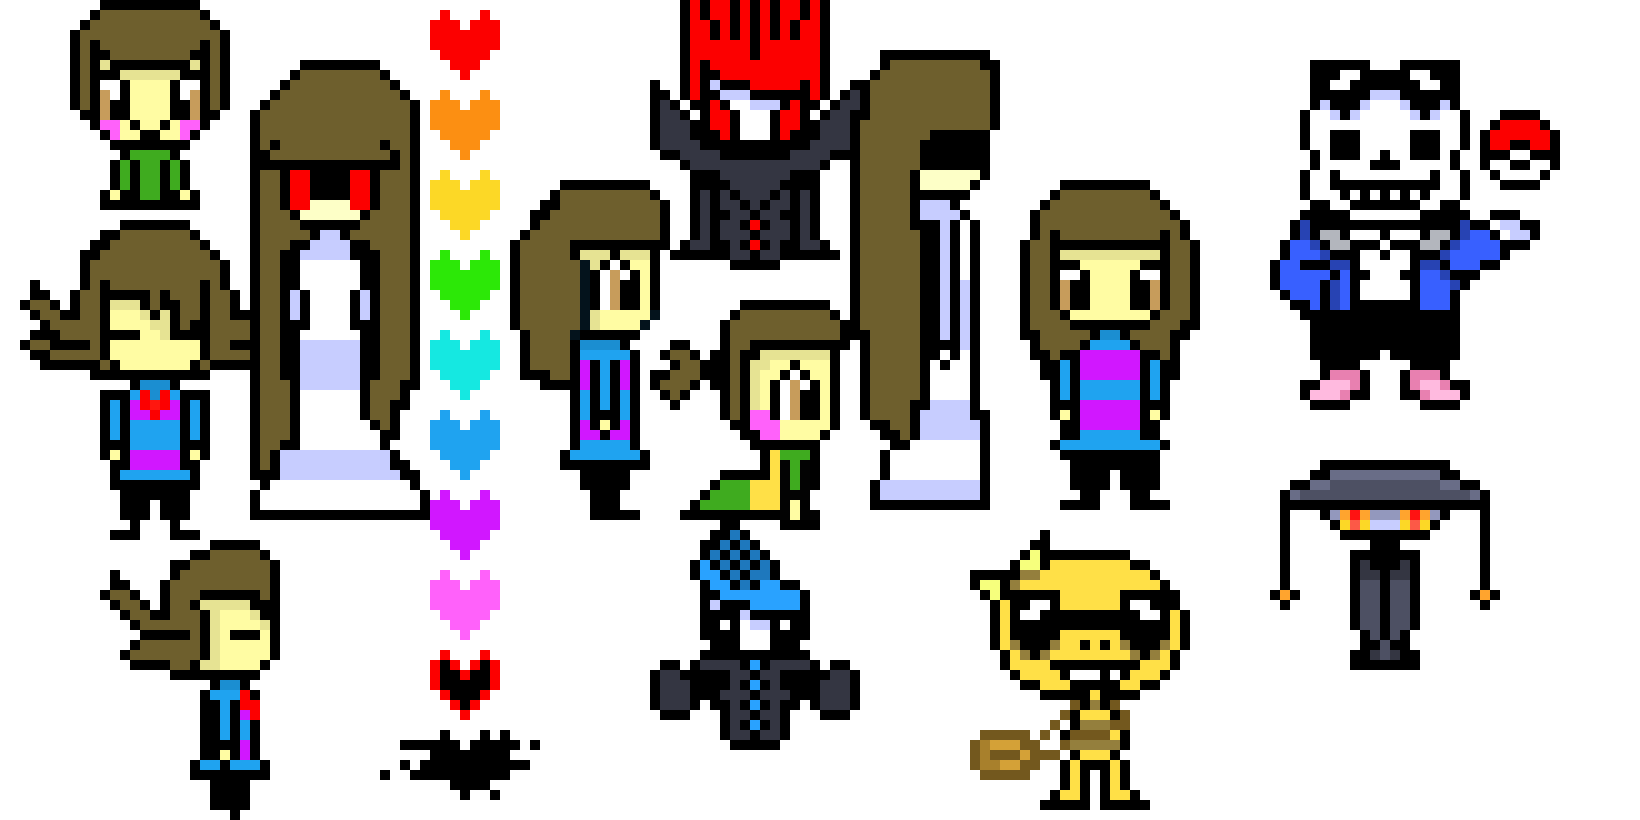 Undertale 2 Pixel Art Maker